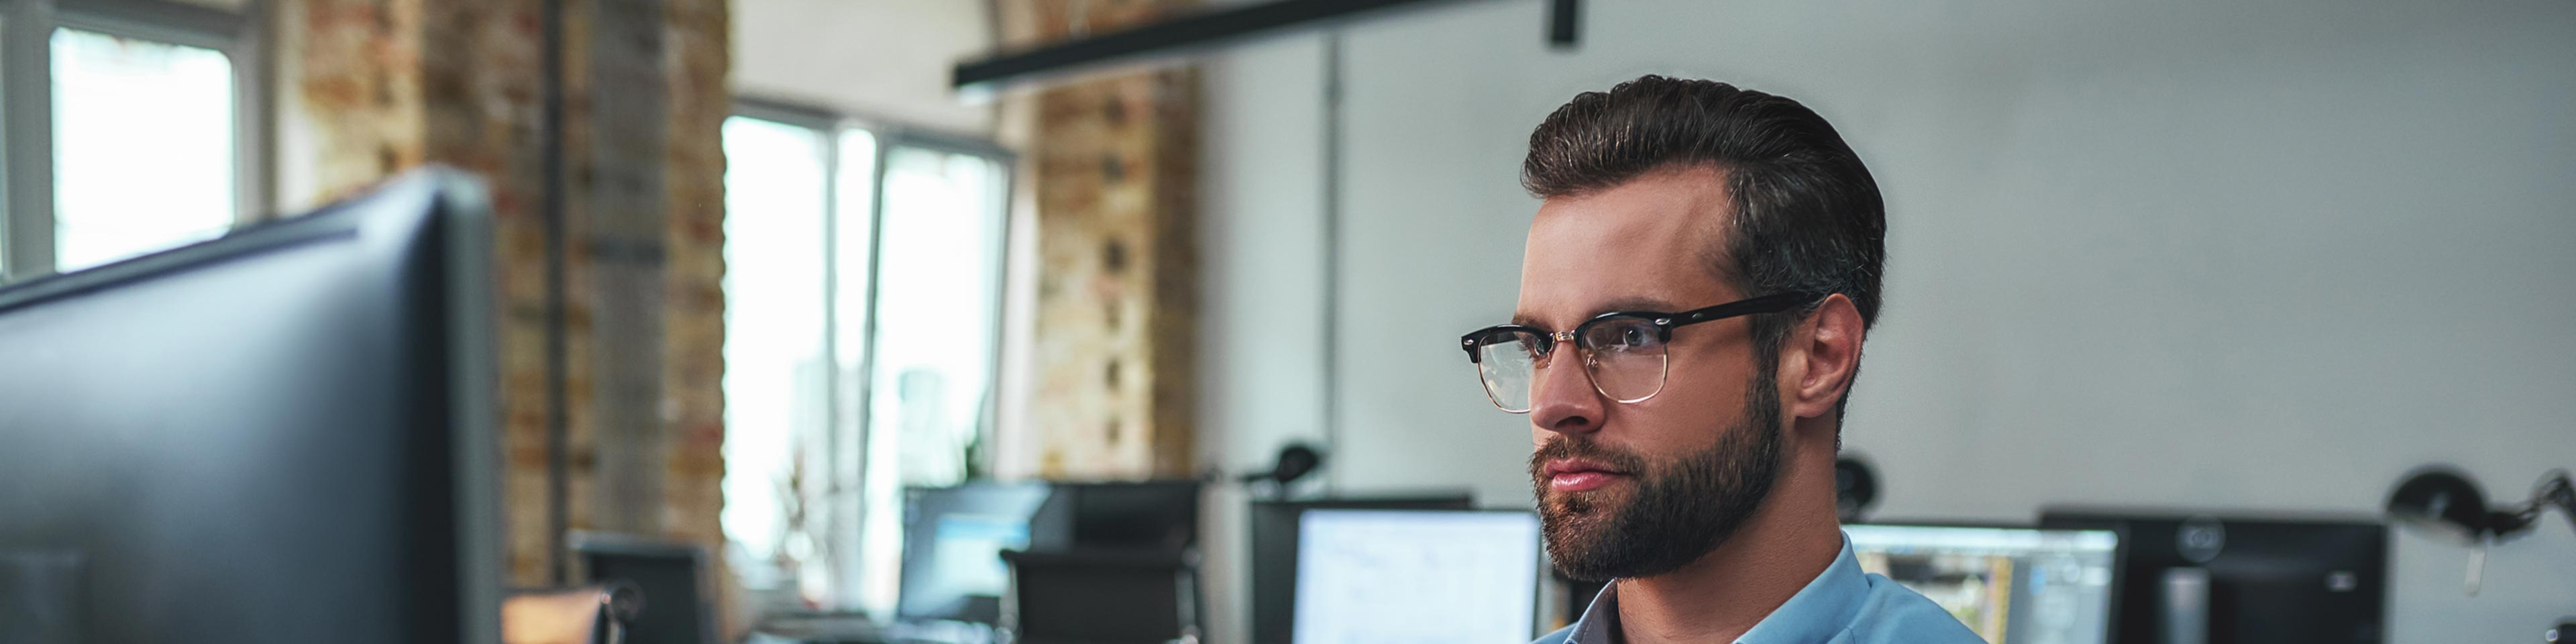 man reviewing whether to incorporate in delaware or nevada at his desk